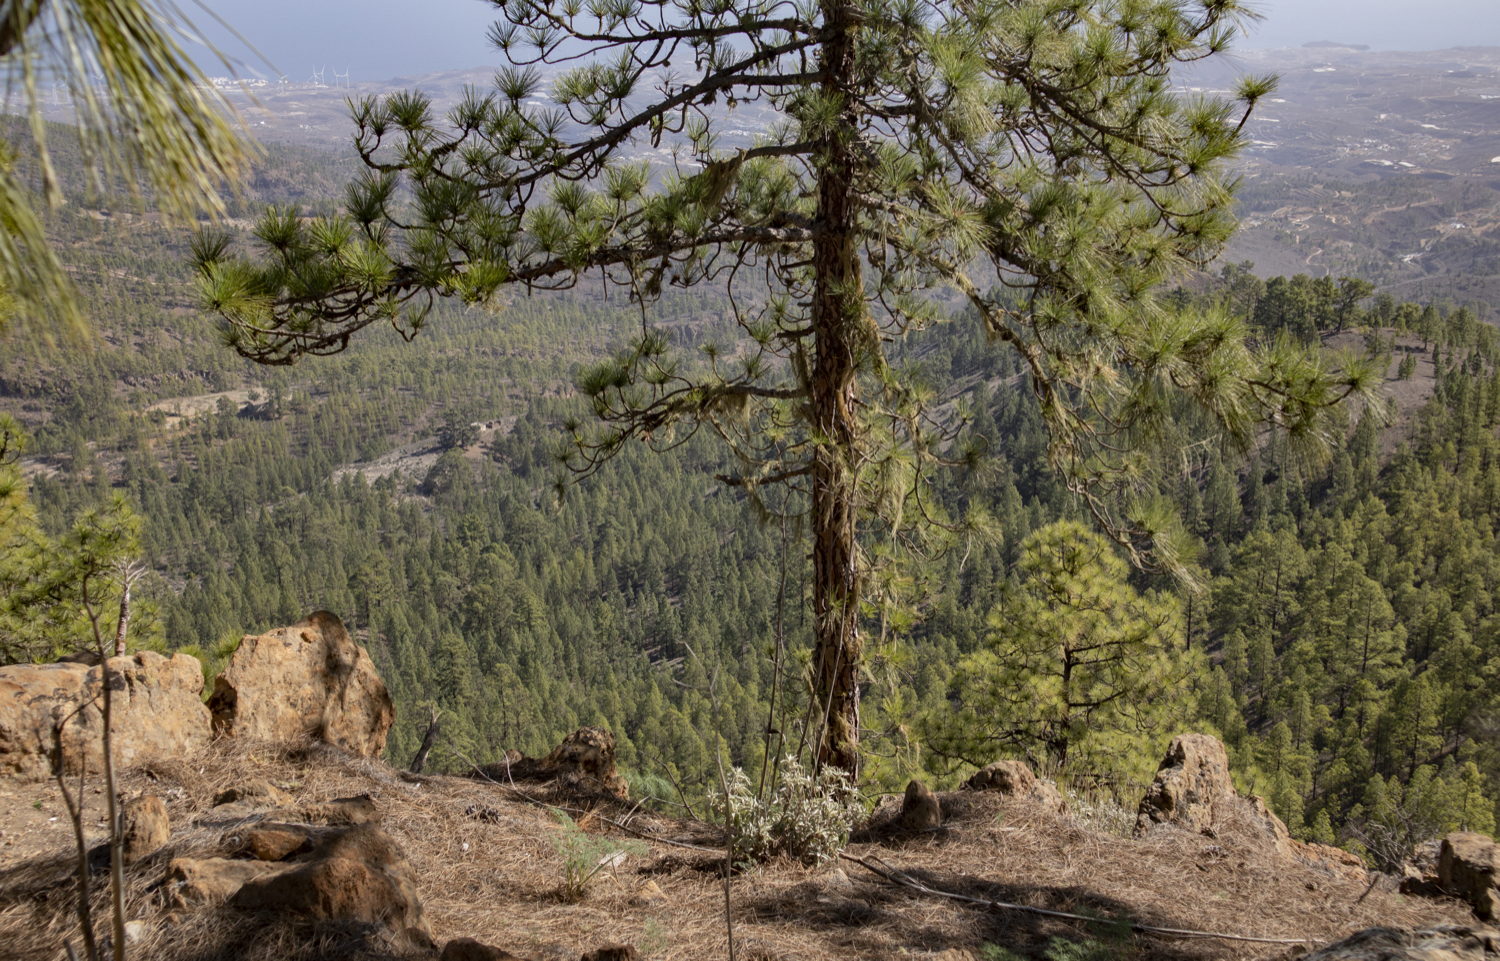 Hiking trail through pine forests with magnificent views